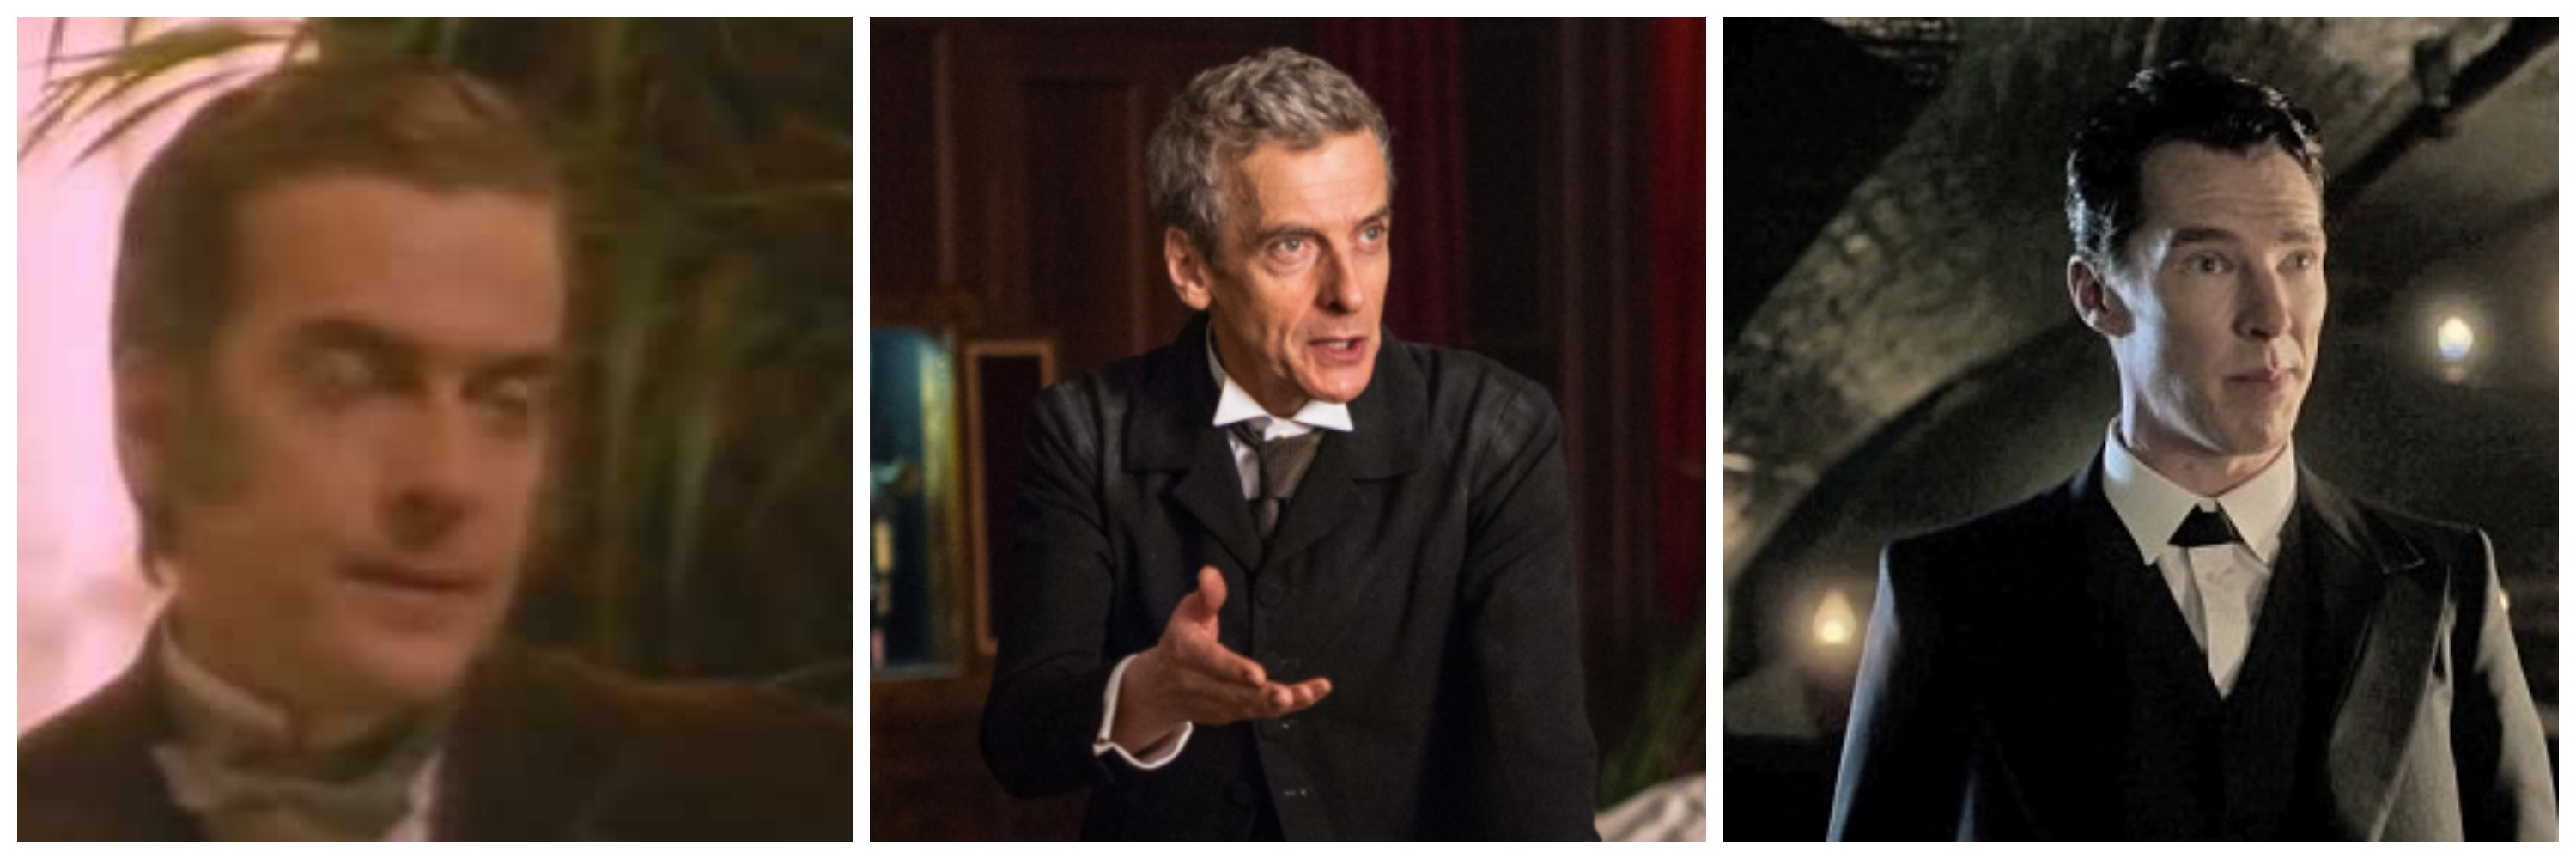 LEFT: Peter Capaldi as Sherlock Holmes. CENTER: Peter Capaldi as the Doctor. RIGHT: Benedict Cumberbatch as Holmes.